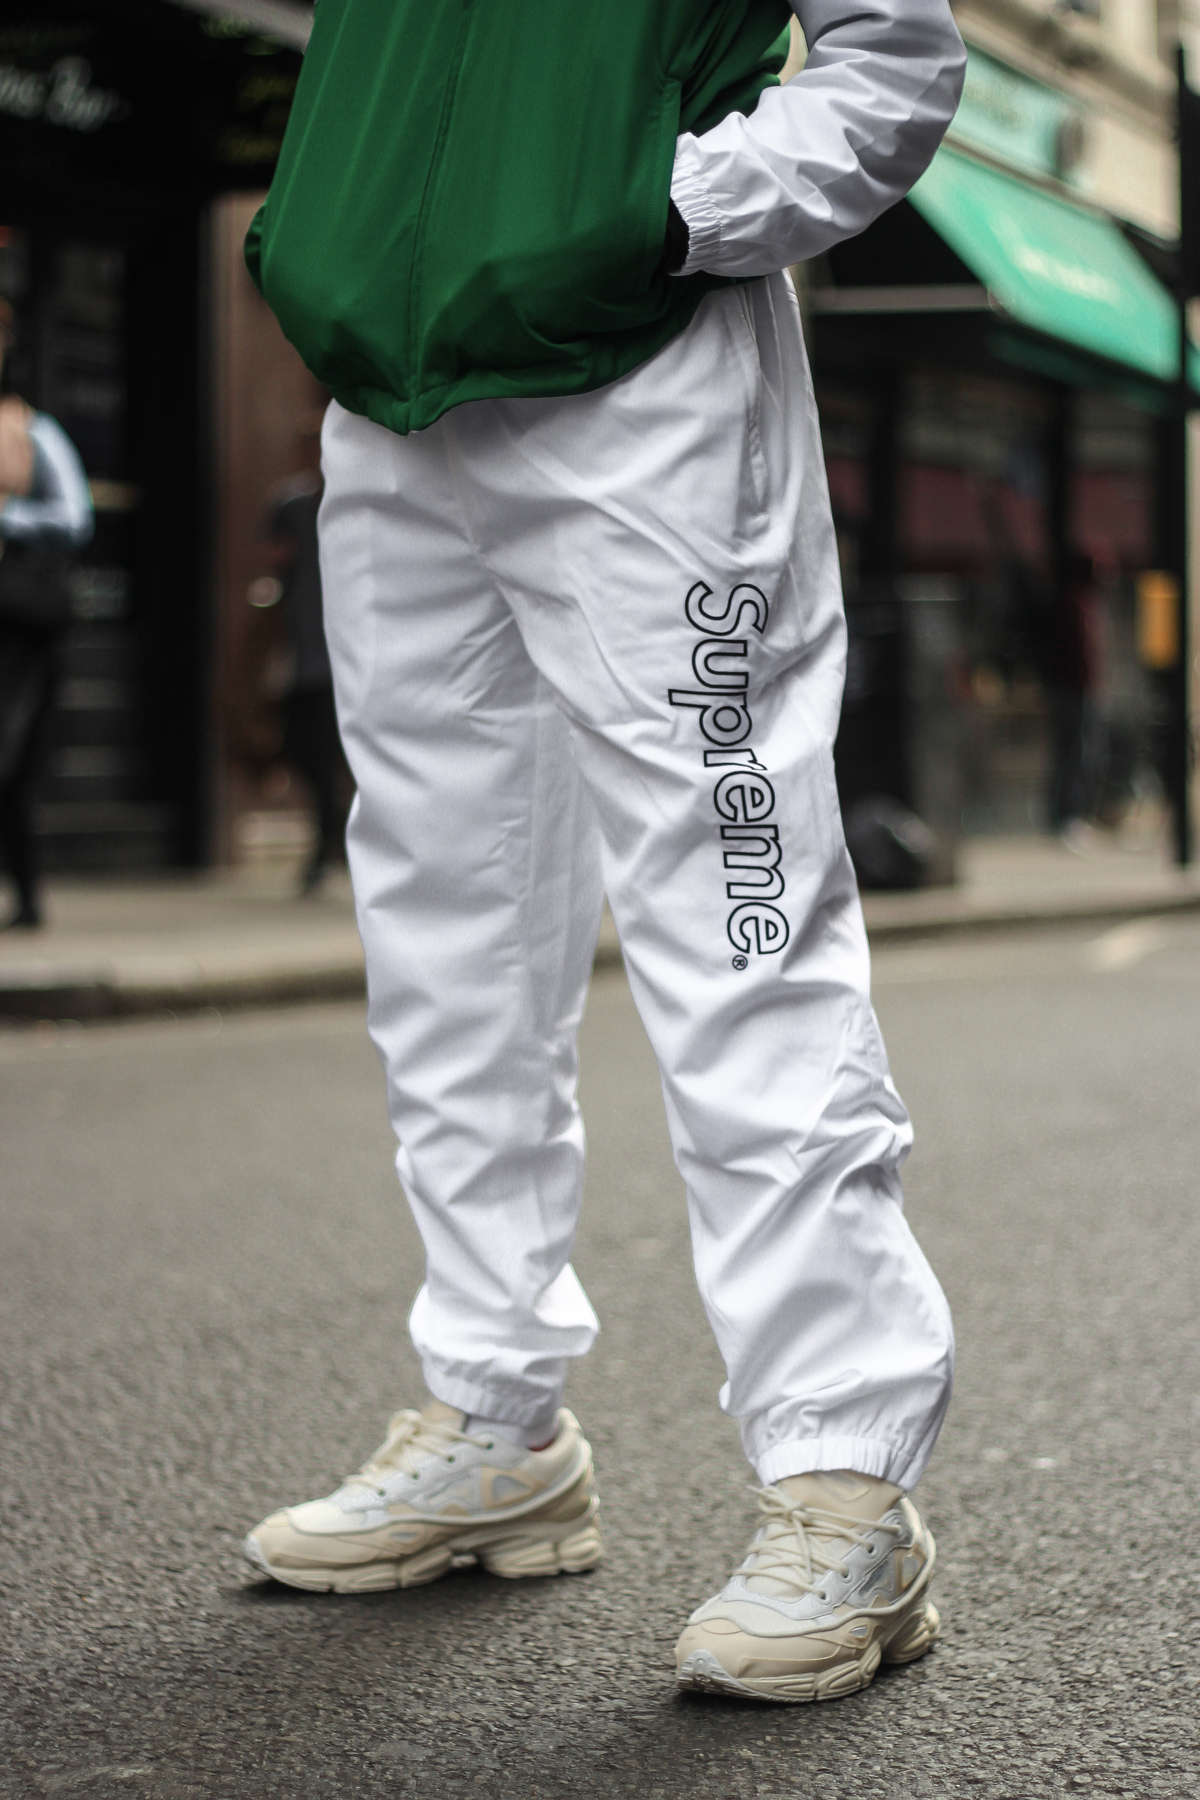 Lacoste x Supreme White Track Pants Green Track Jacket